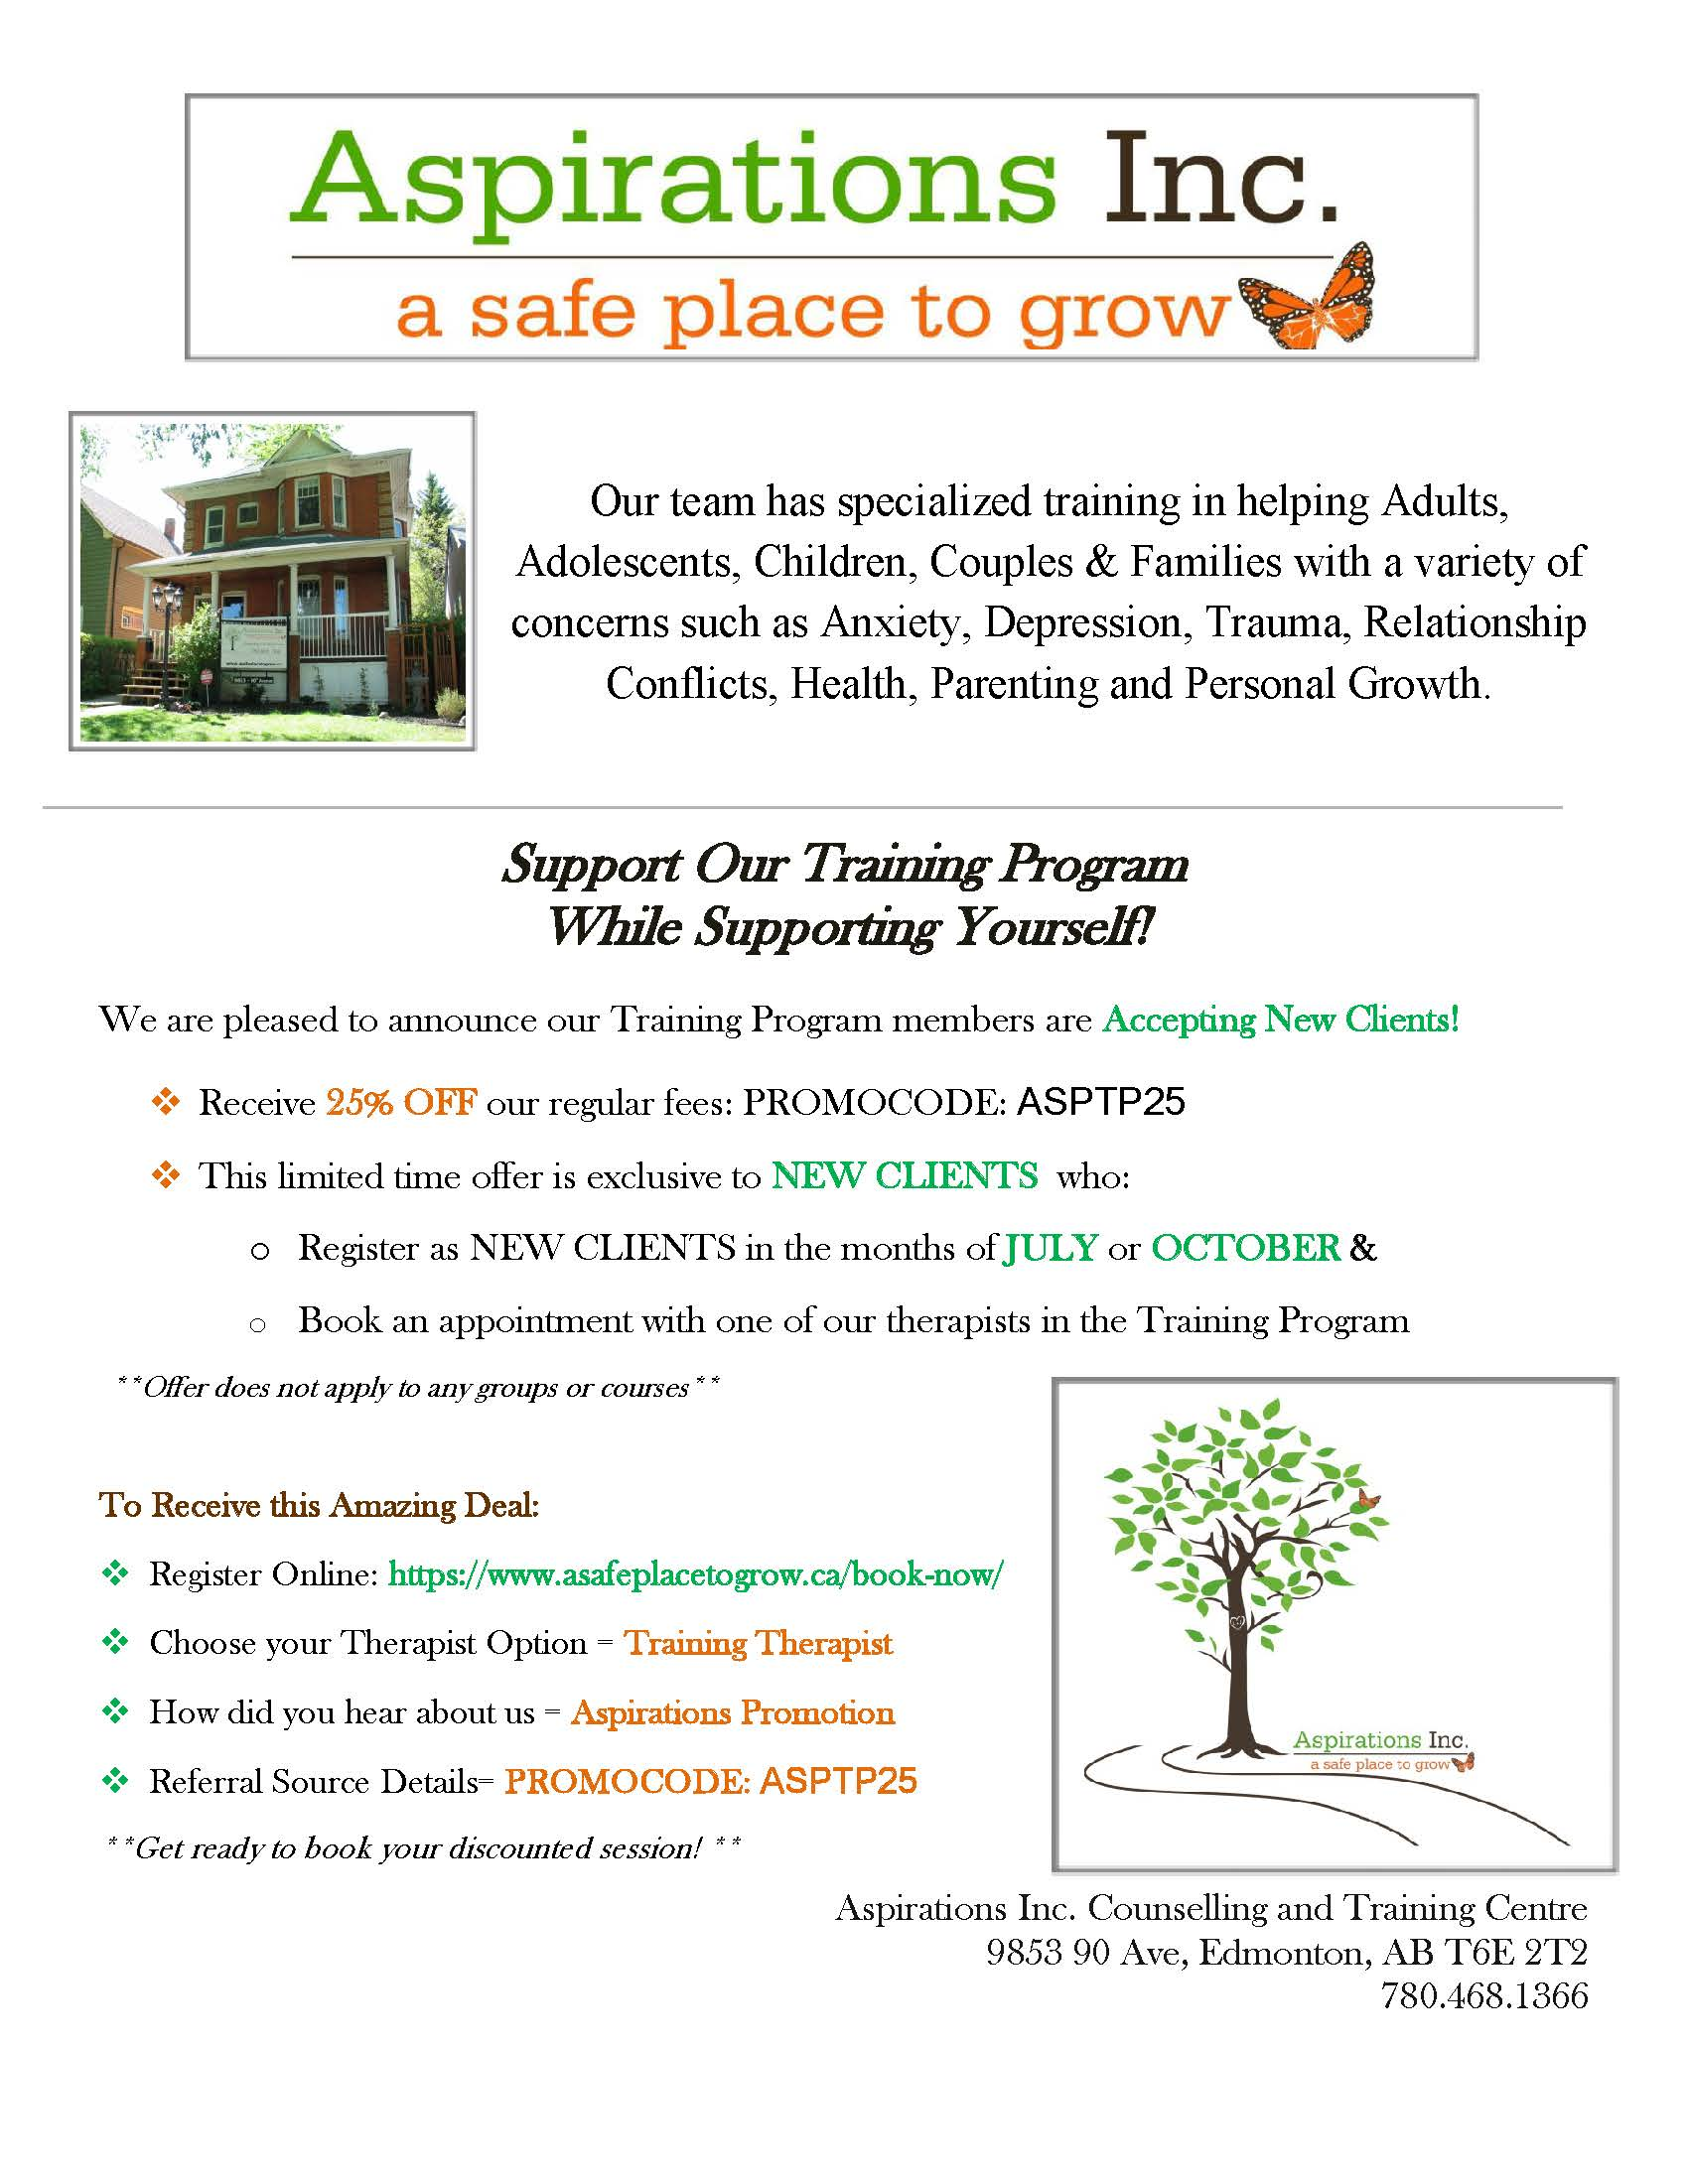 Support Our Training Program Flyer